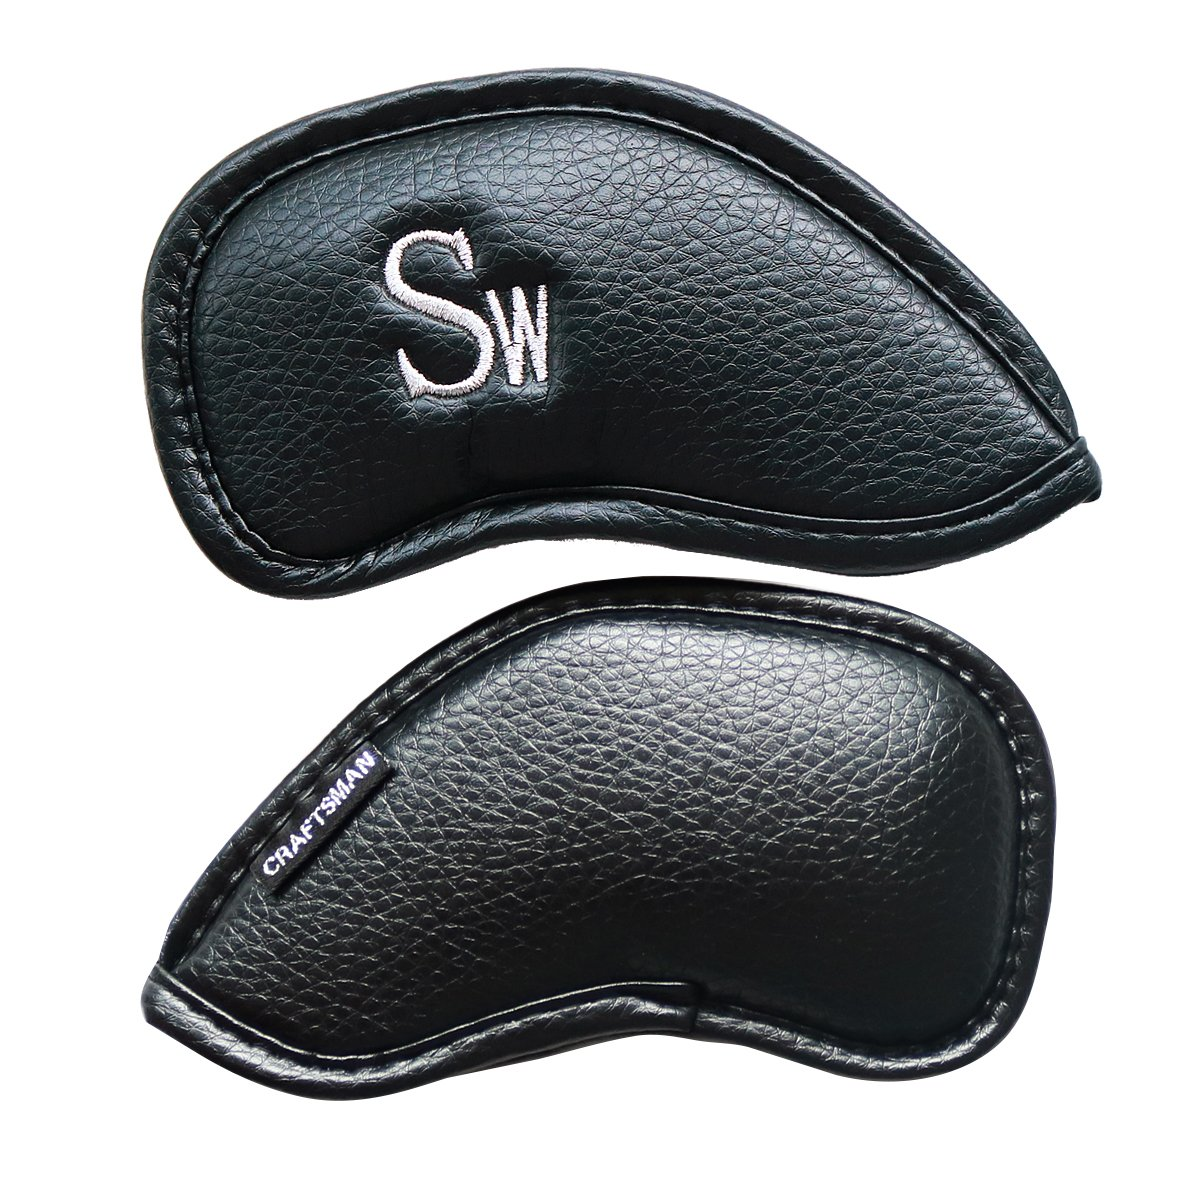 Craftsman Golf 12pcs Thick Synthetic Leather Golf Iron Head Covers Set Headcover Fit All Brands Titleist, Callaway, Ping, Taylormade, Cobra Etc. (Black SW) by Craftsman Golf